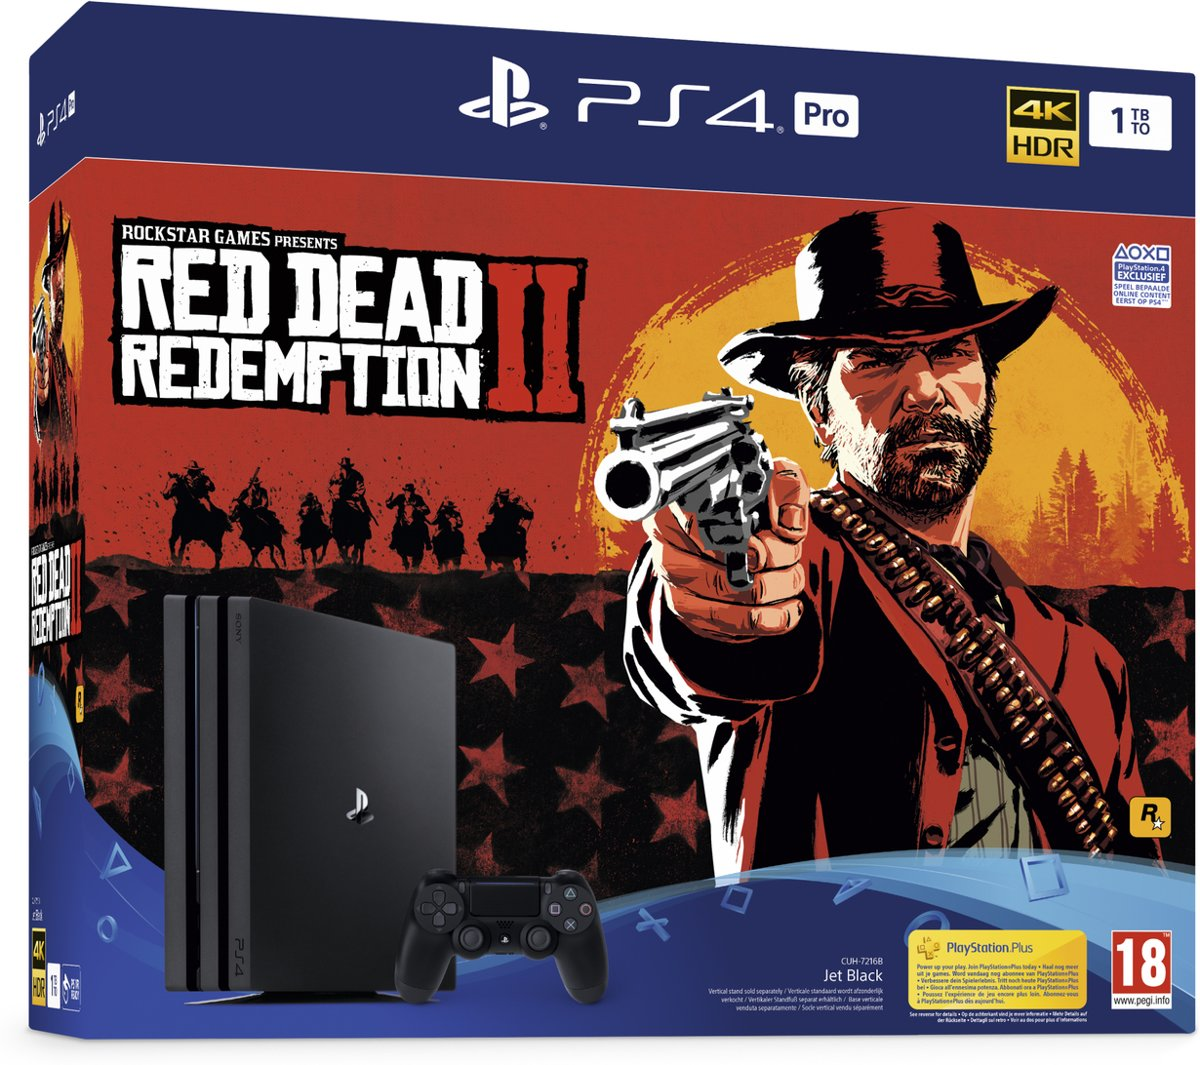 PS4 Pro Console 1TB + Red Dead Redemption 2 PlayStation 4